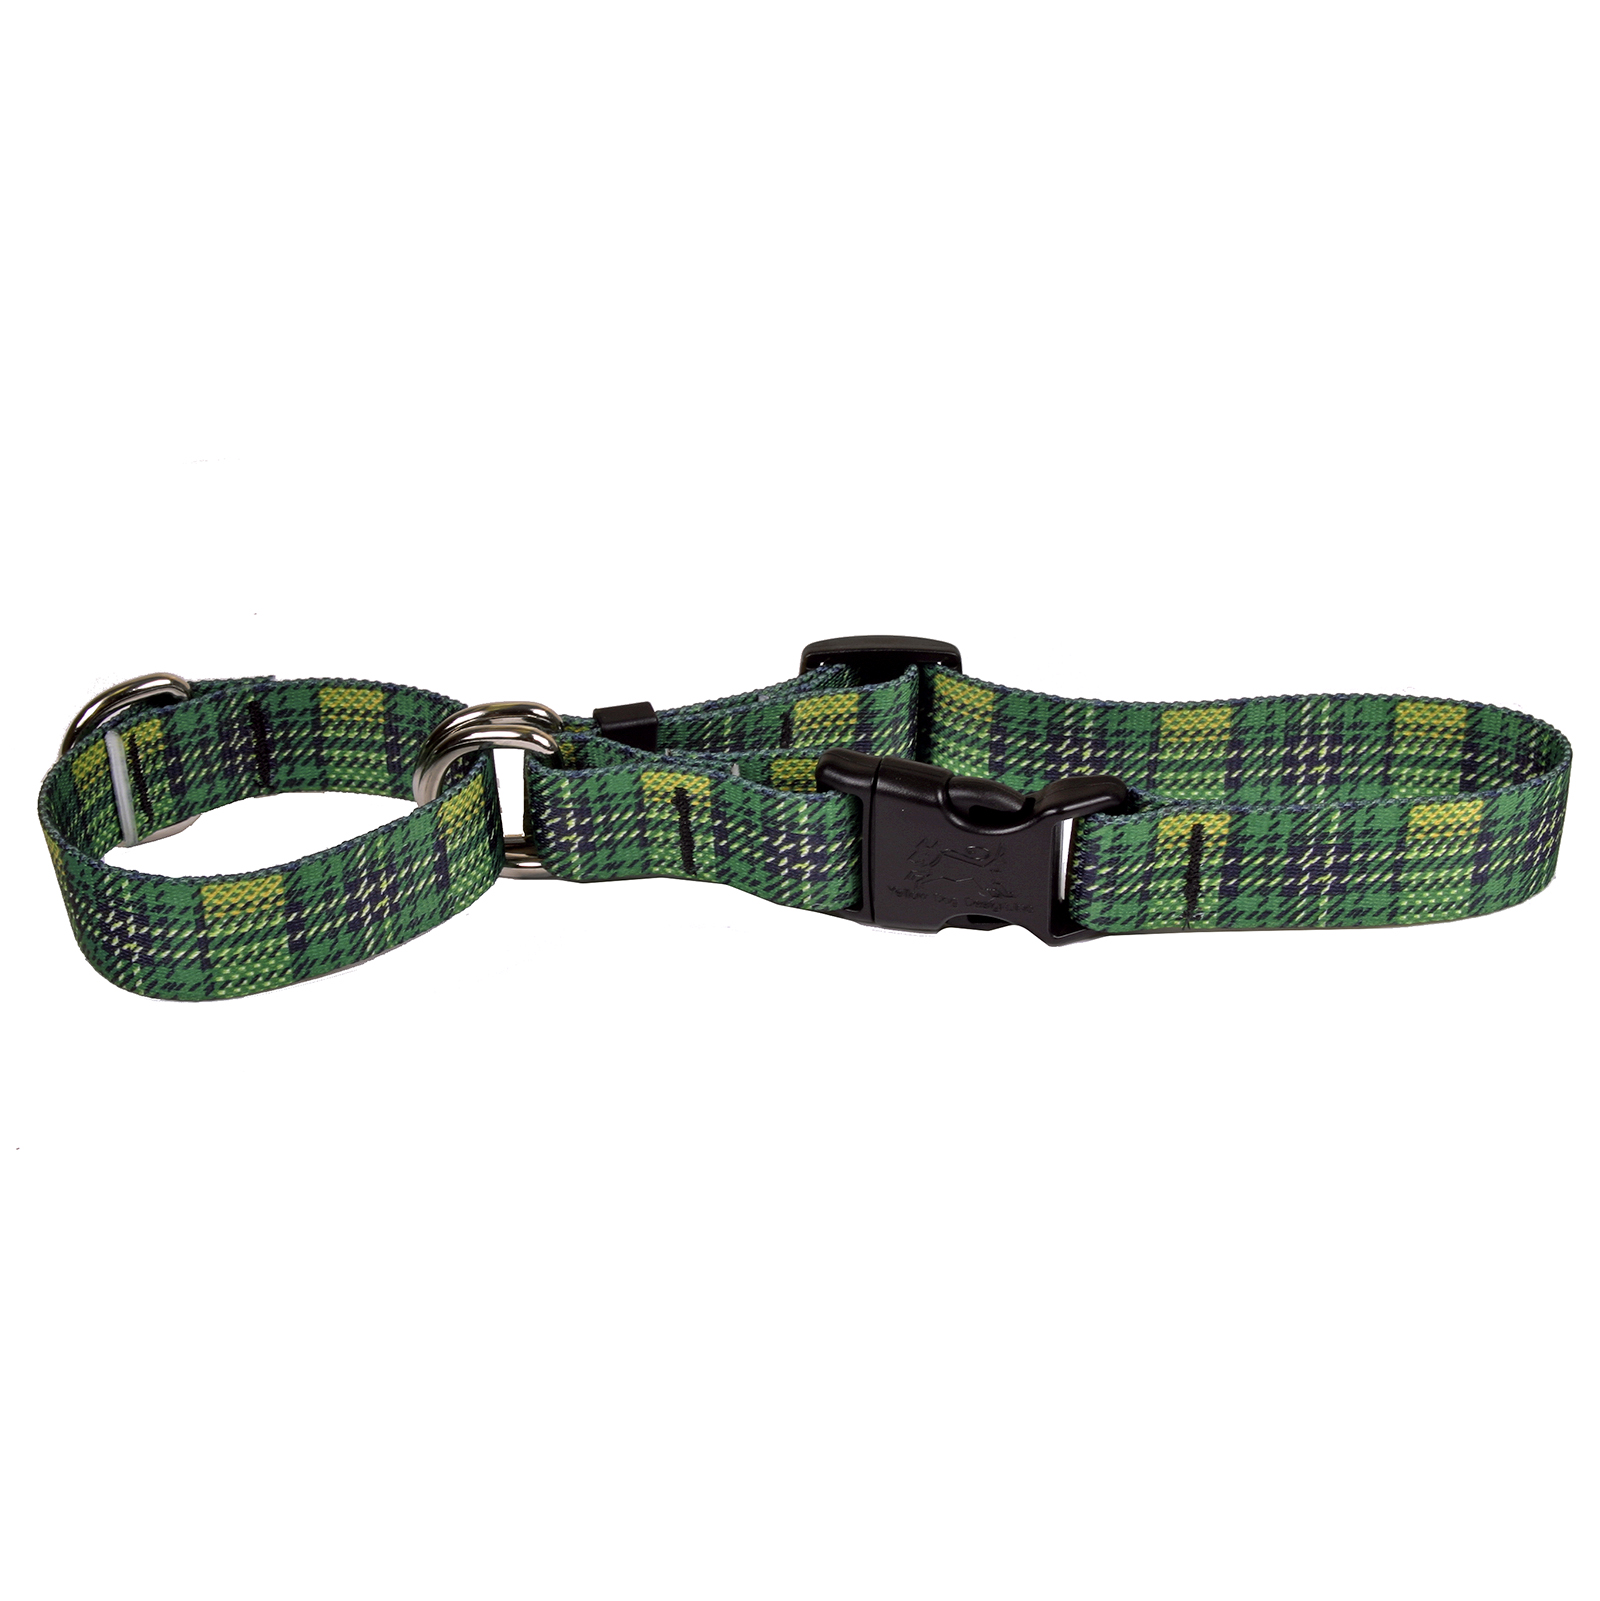 Highland Plaid Green and Gold Martingale Collar